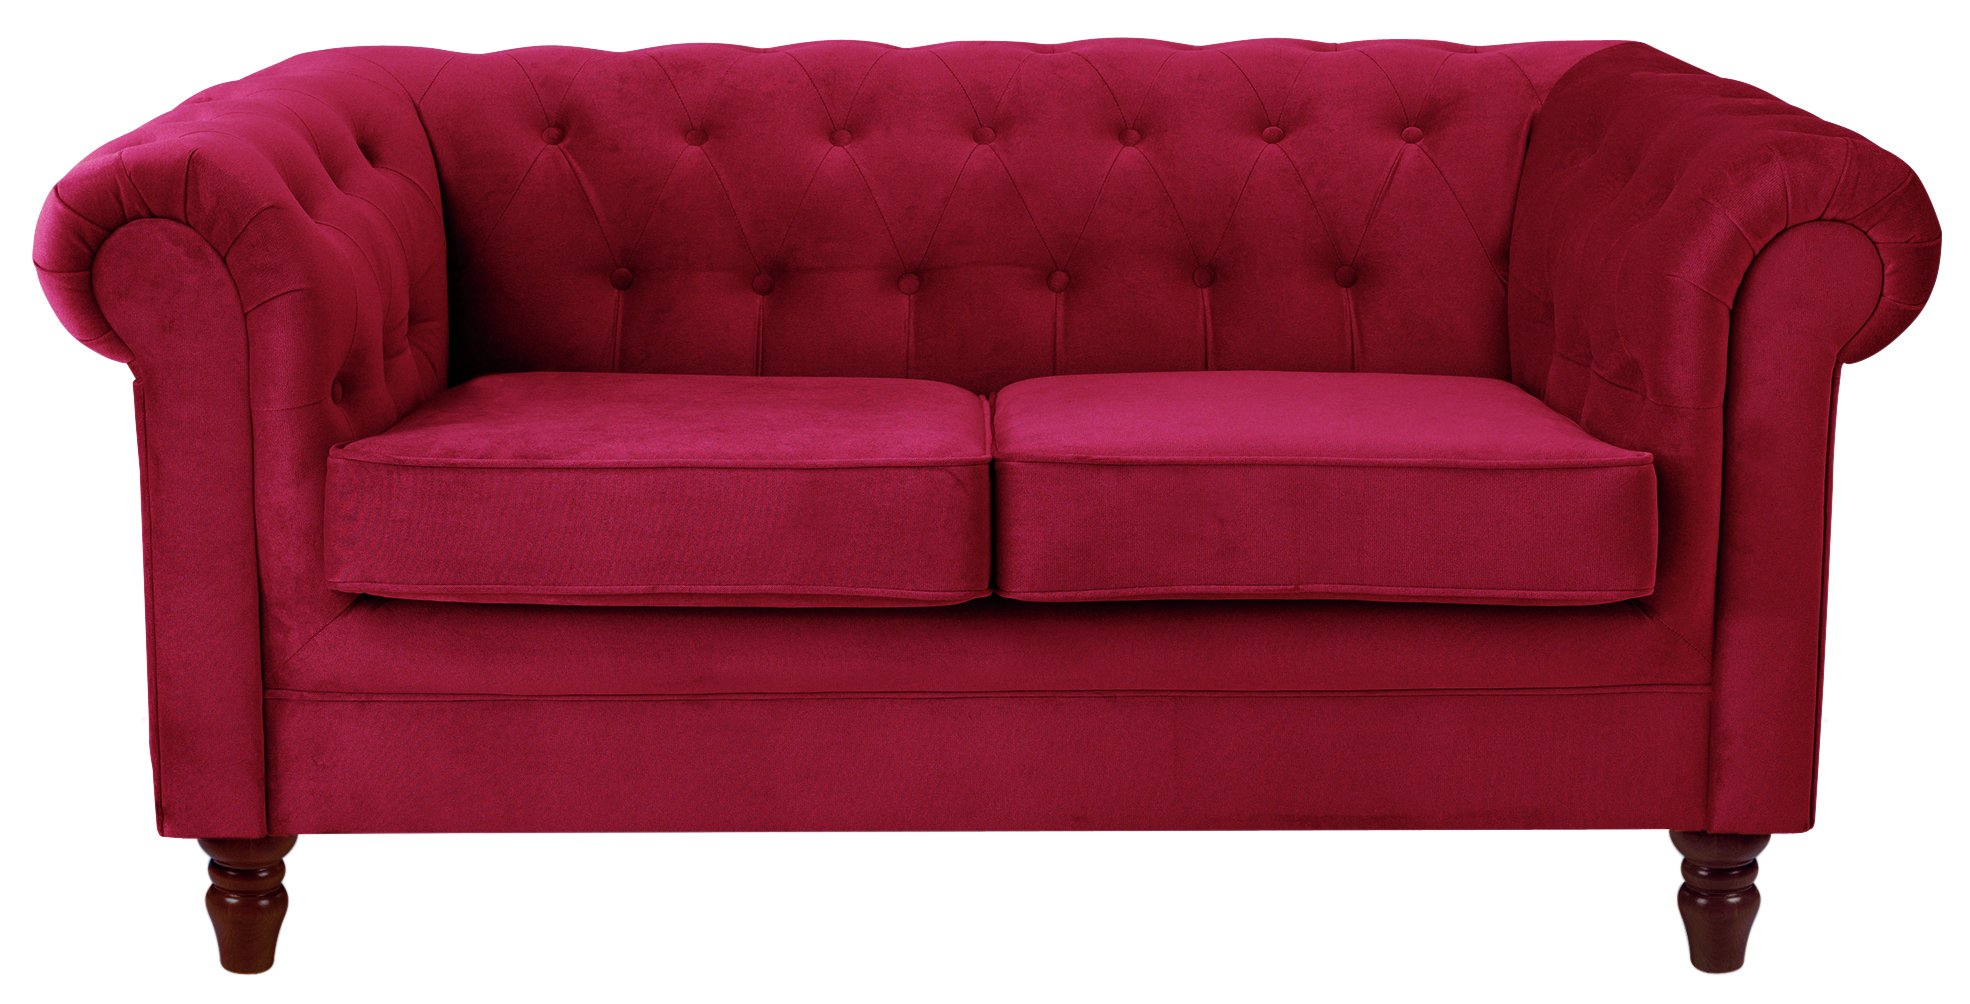 Heart of House Chesterfield 2 Seater Fabric Sofa Red